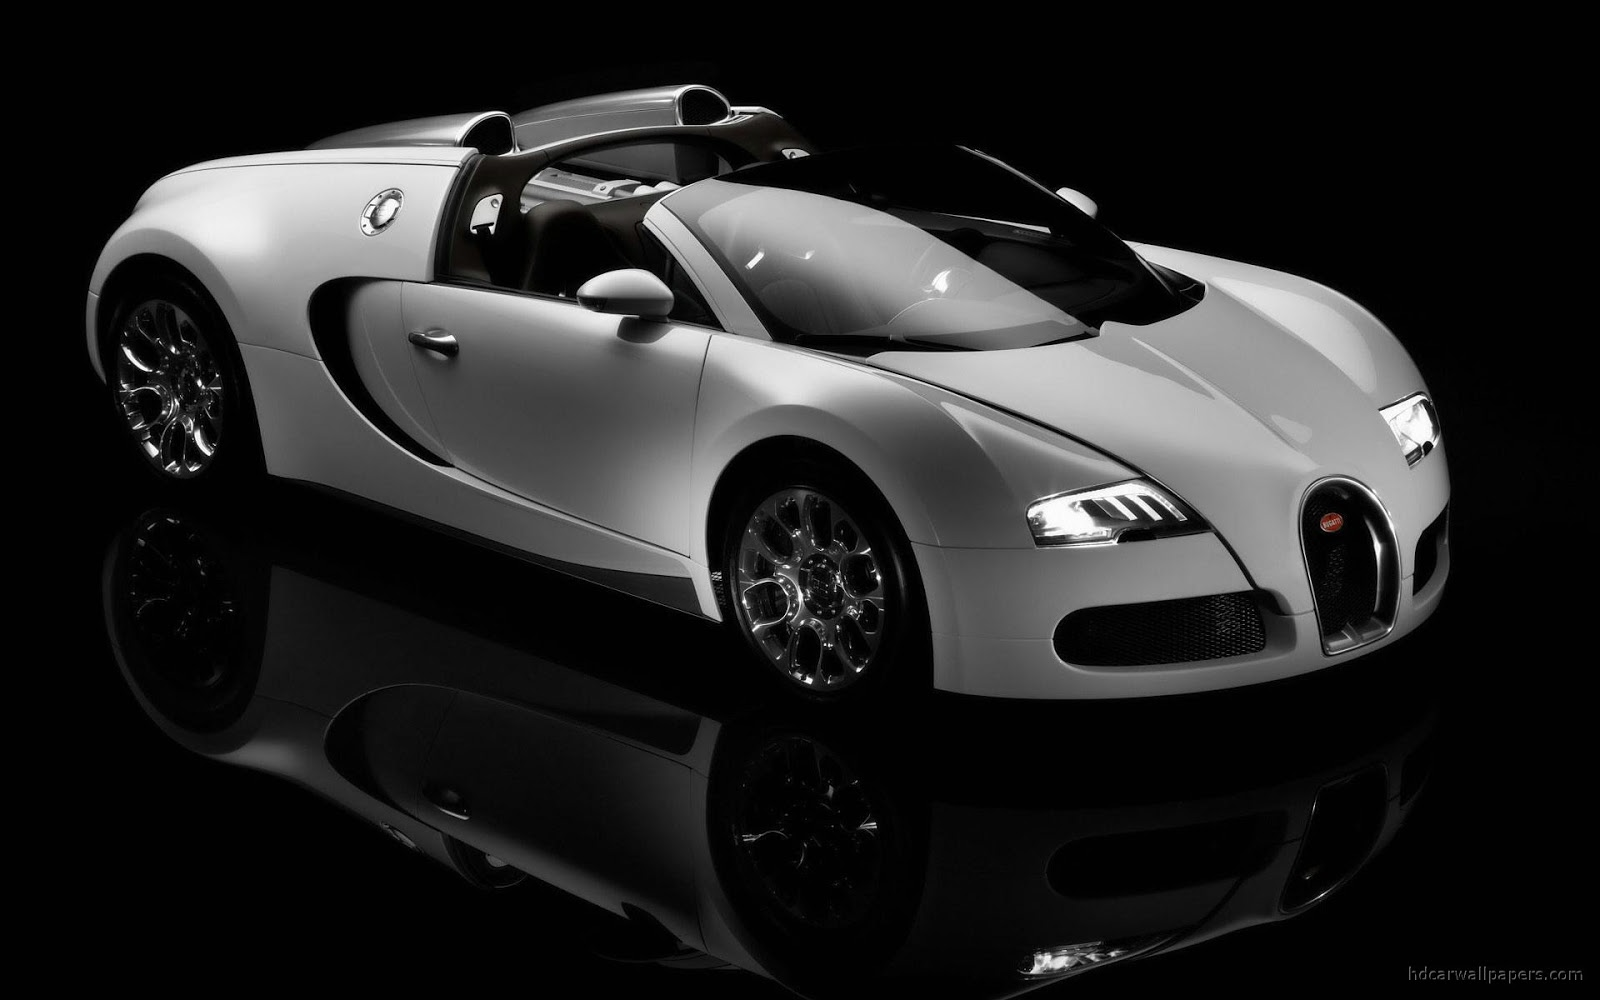 HD Wallpapers: BUGATTI VEYRON HD WALLPAPERS